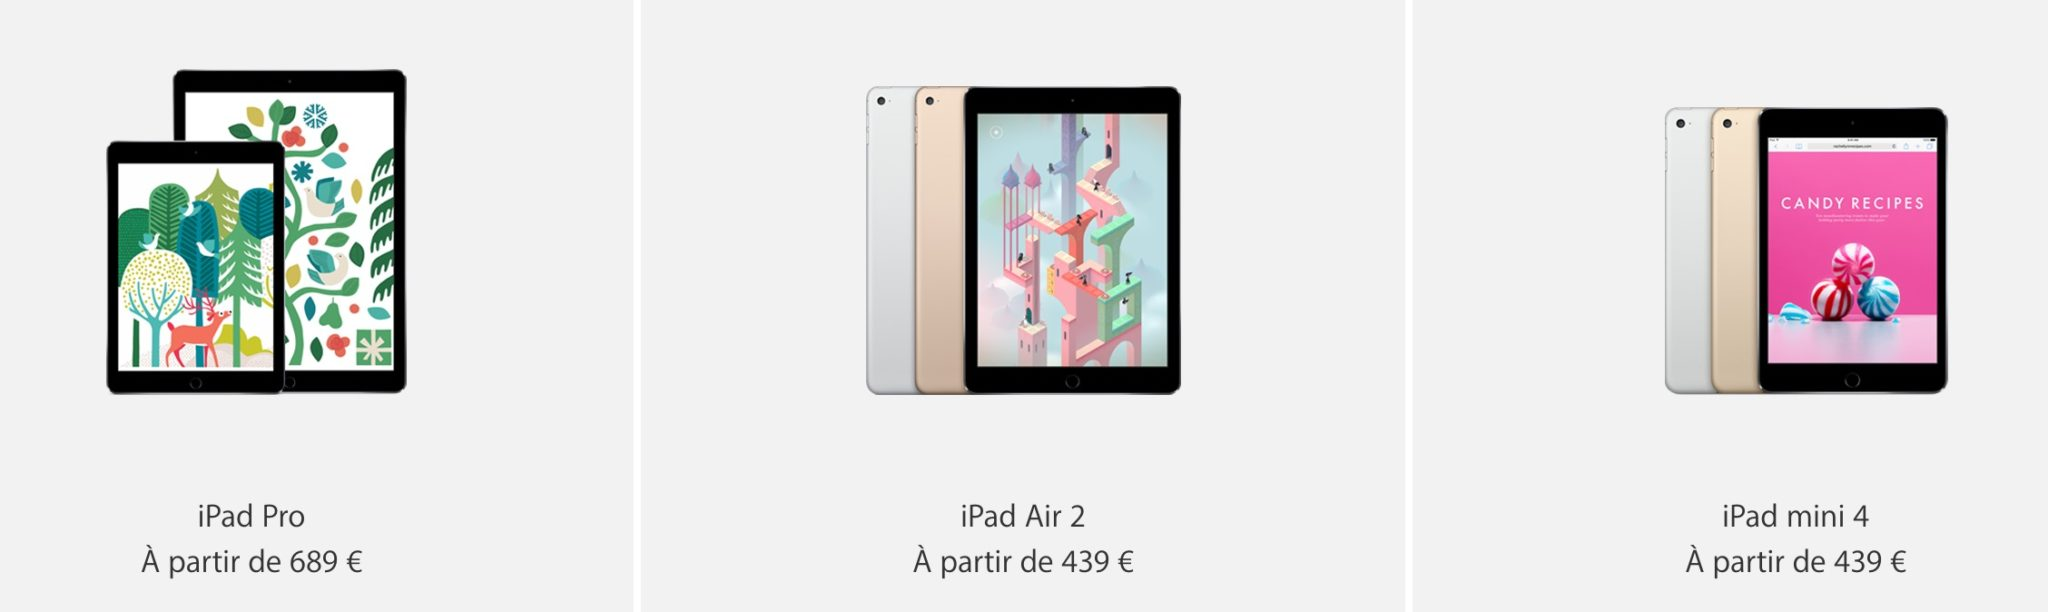 Apple Black Friday - iPad